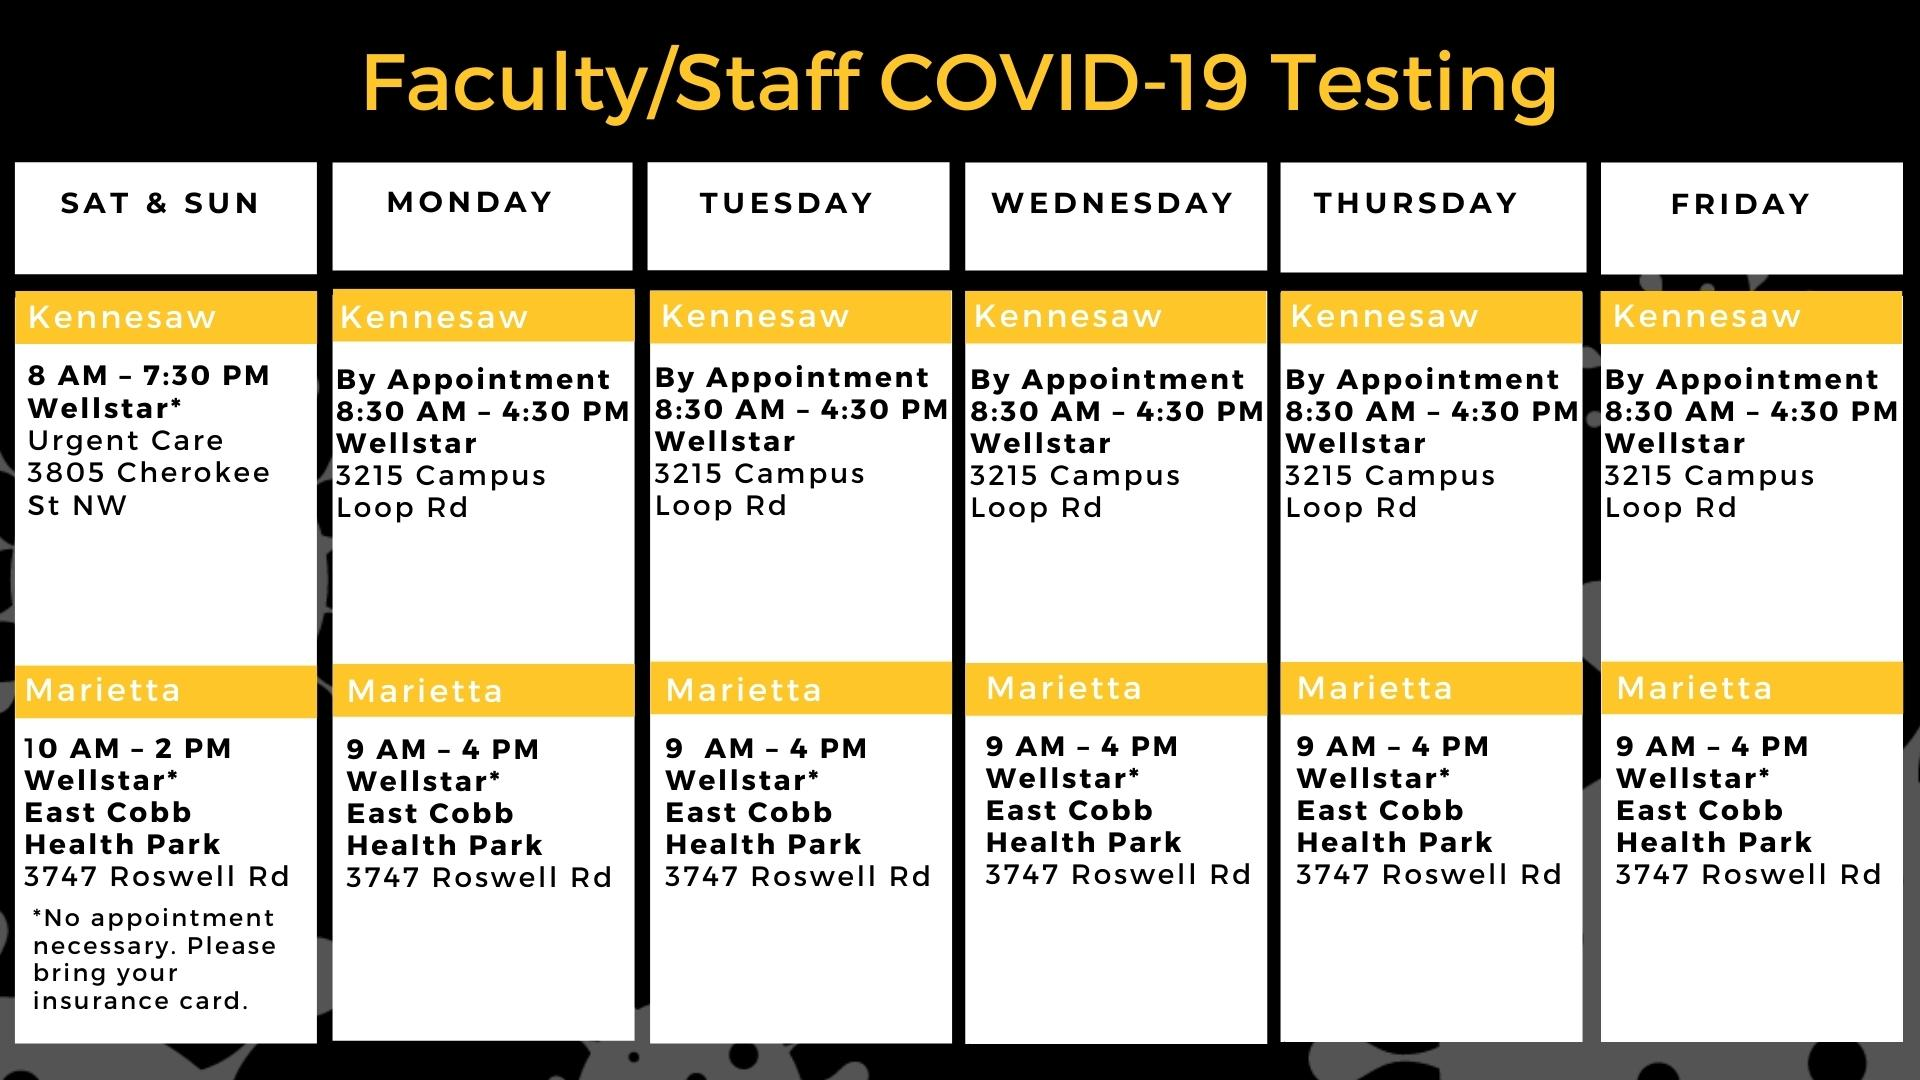 Faculty/Staff COVID-19 Testing Calendar